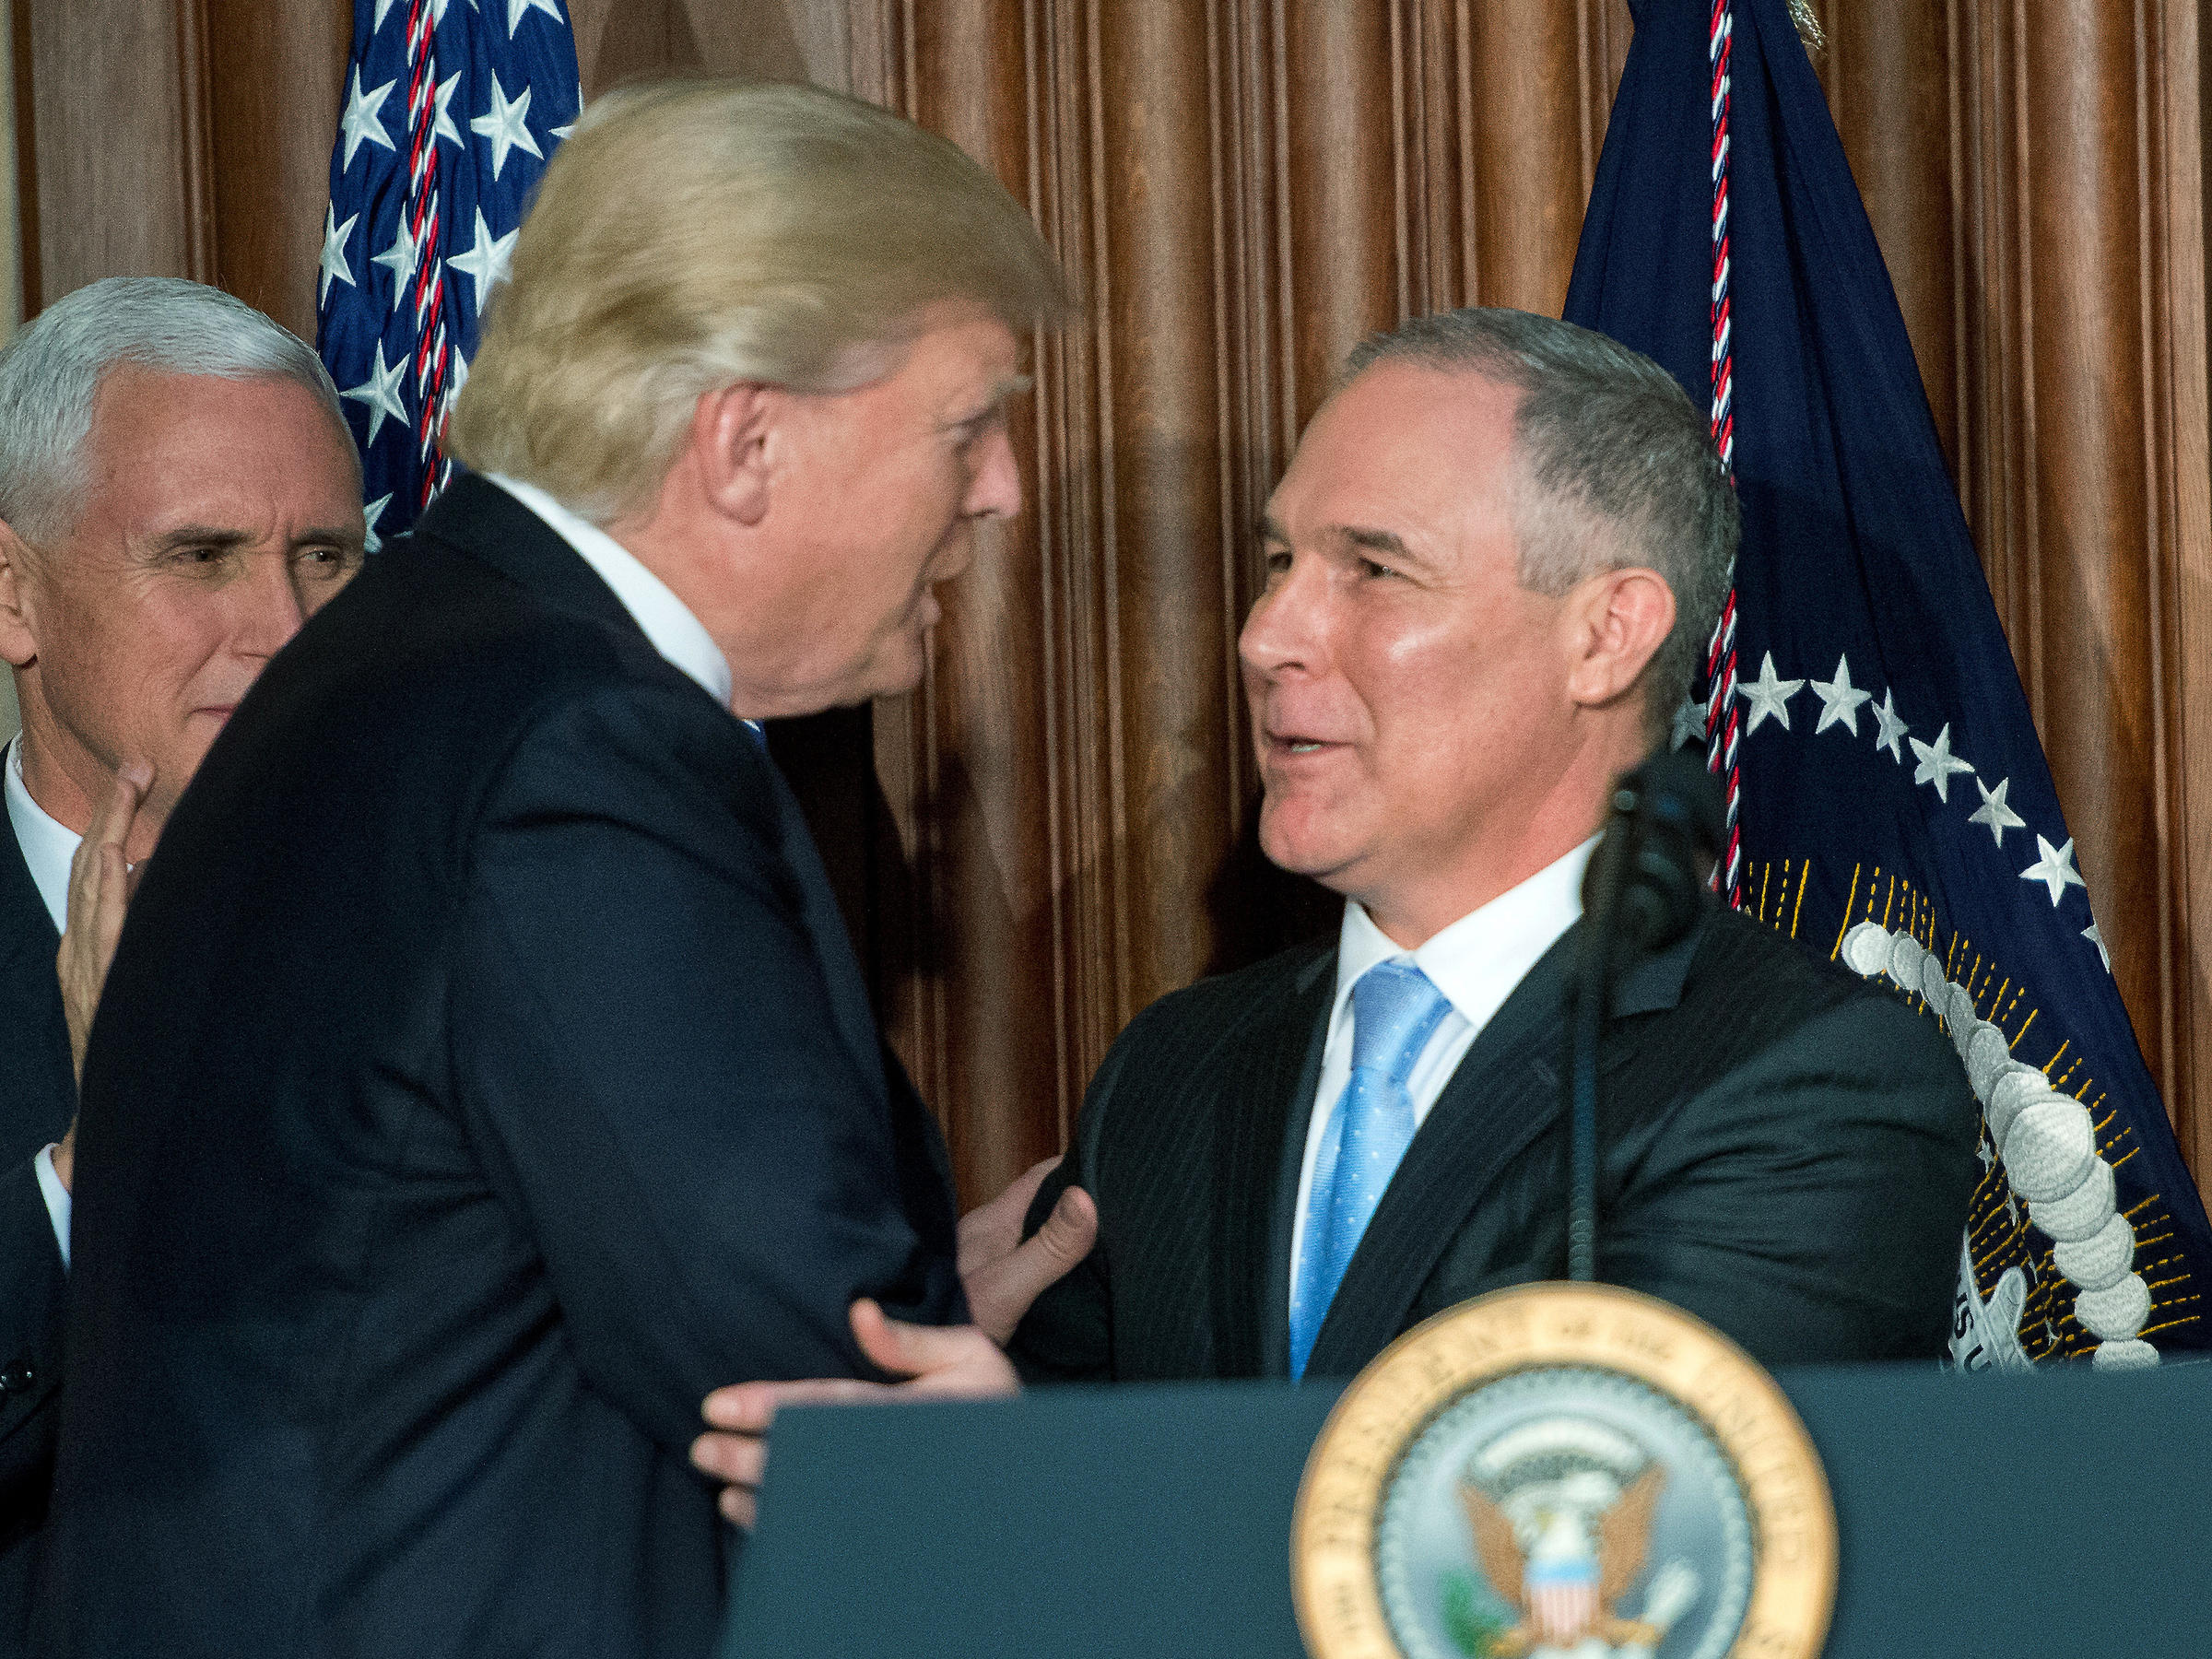 U.S. EPA offers buyouts in bid to cut staff -internal memo